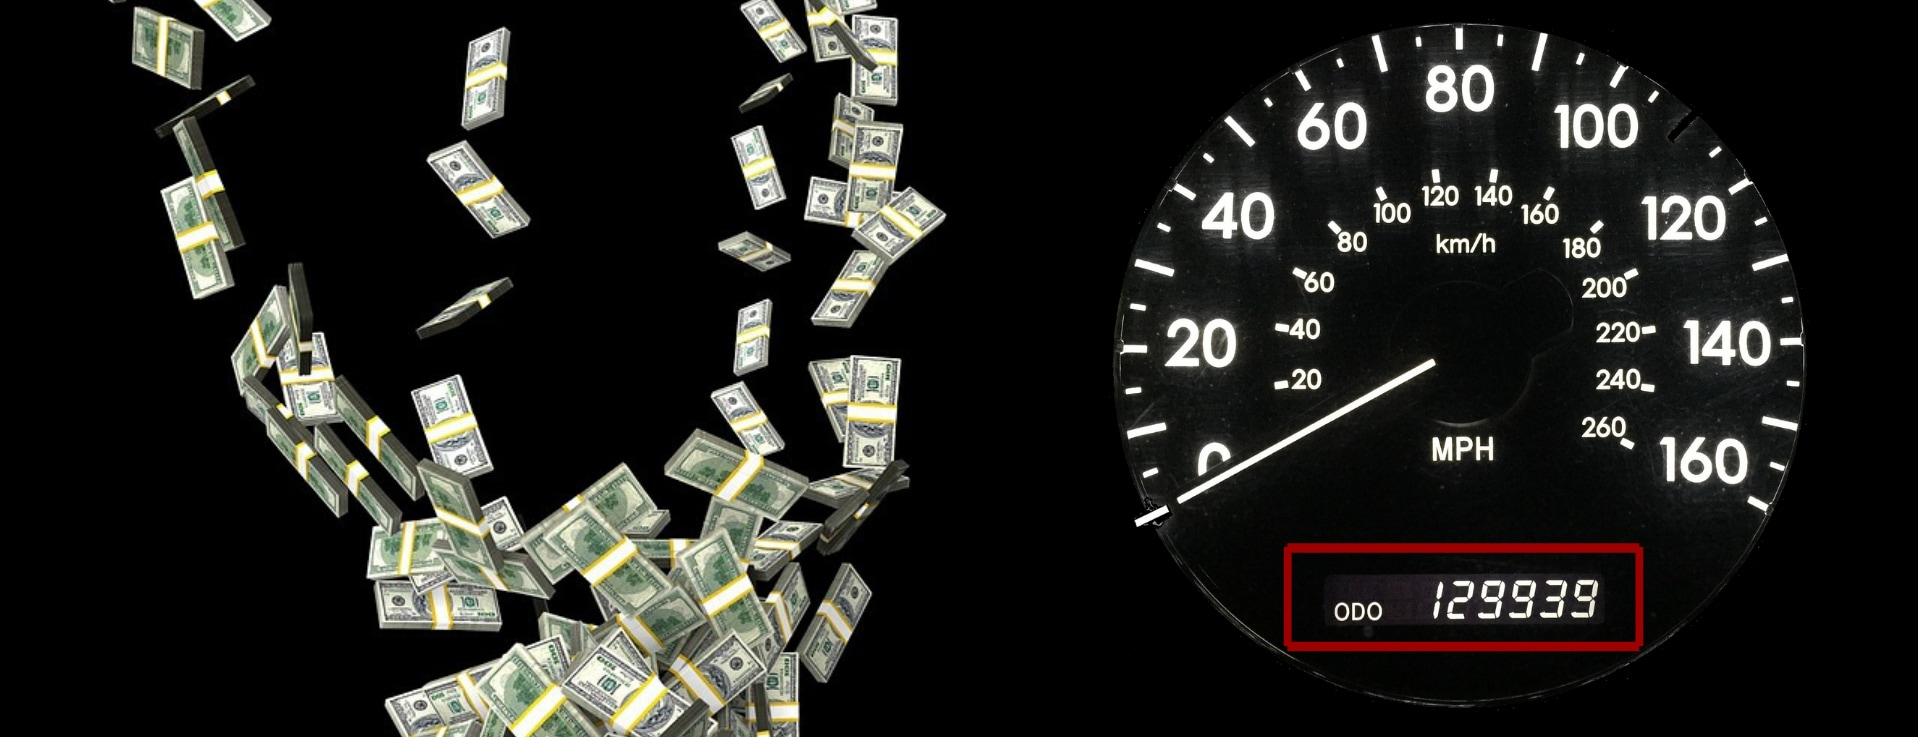 Dark image of a used car odometer showing high mileage with lots of cash falling